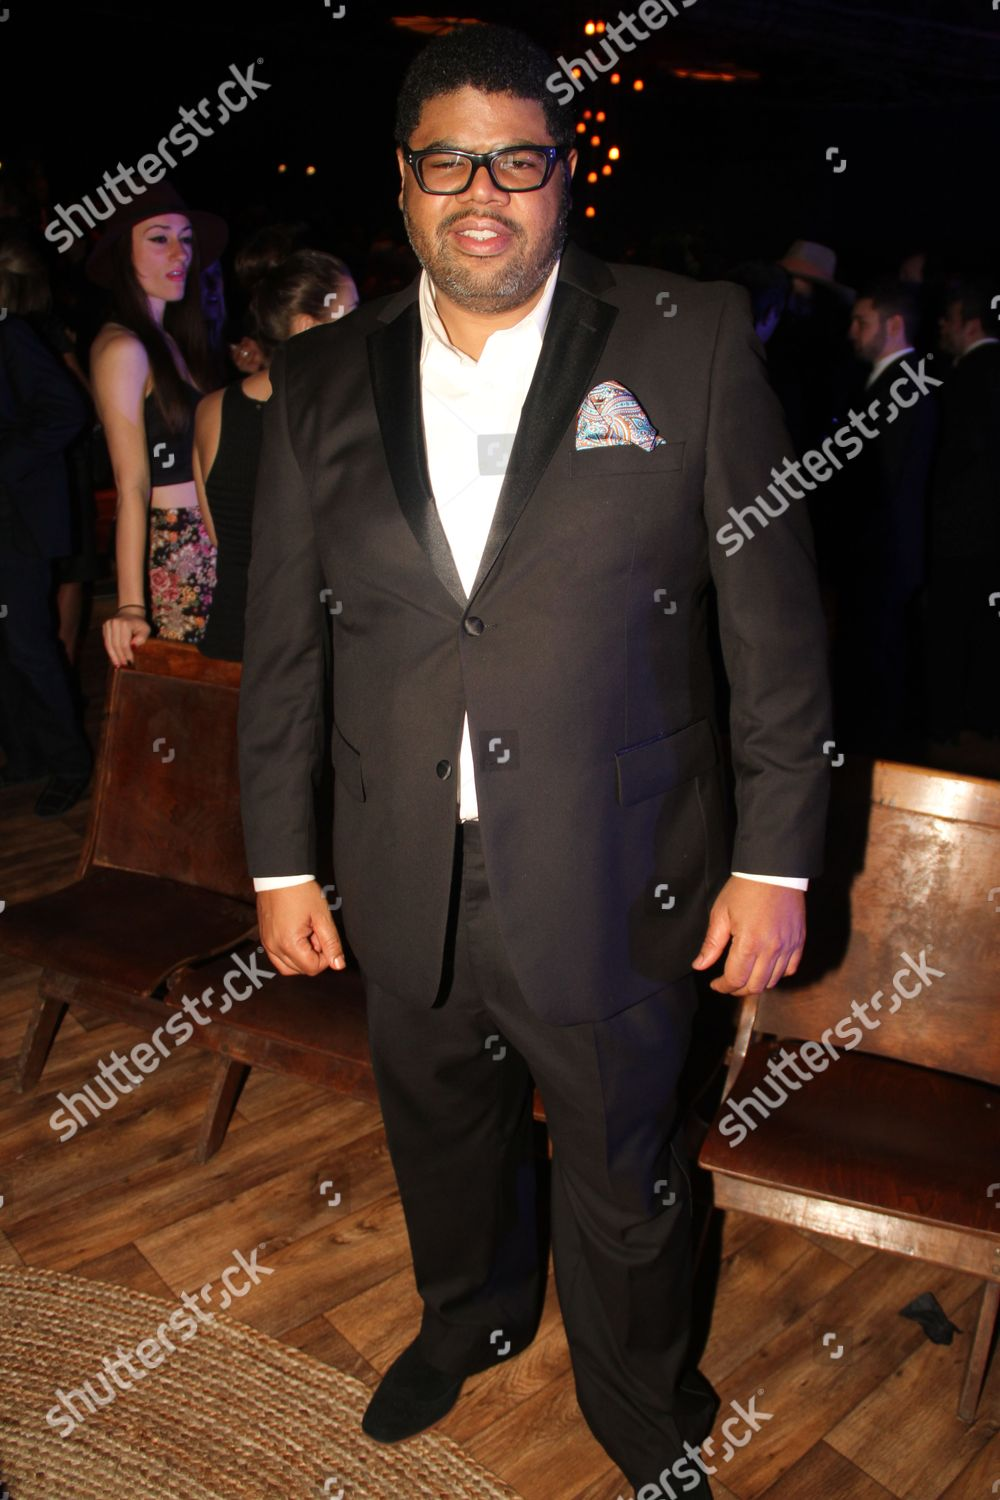 Stock photo of 56th Annual Grammy Awards, Universal Music Group After Party, Los Angeles, America - 26 Jan 2014